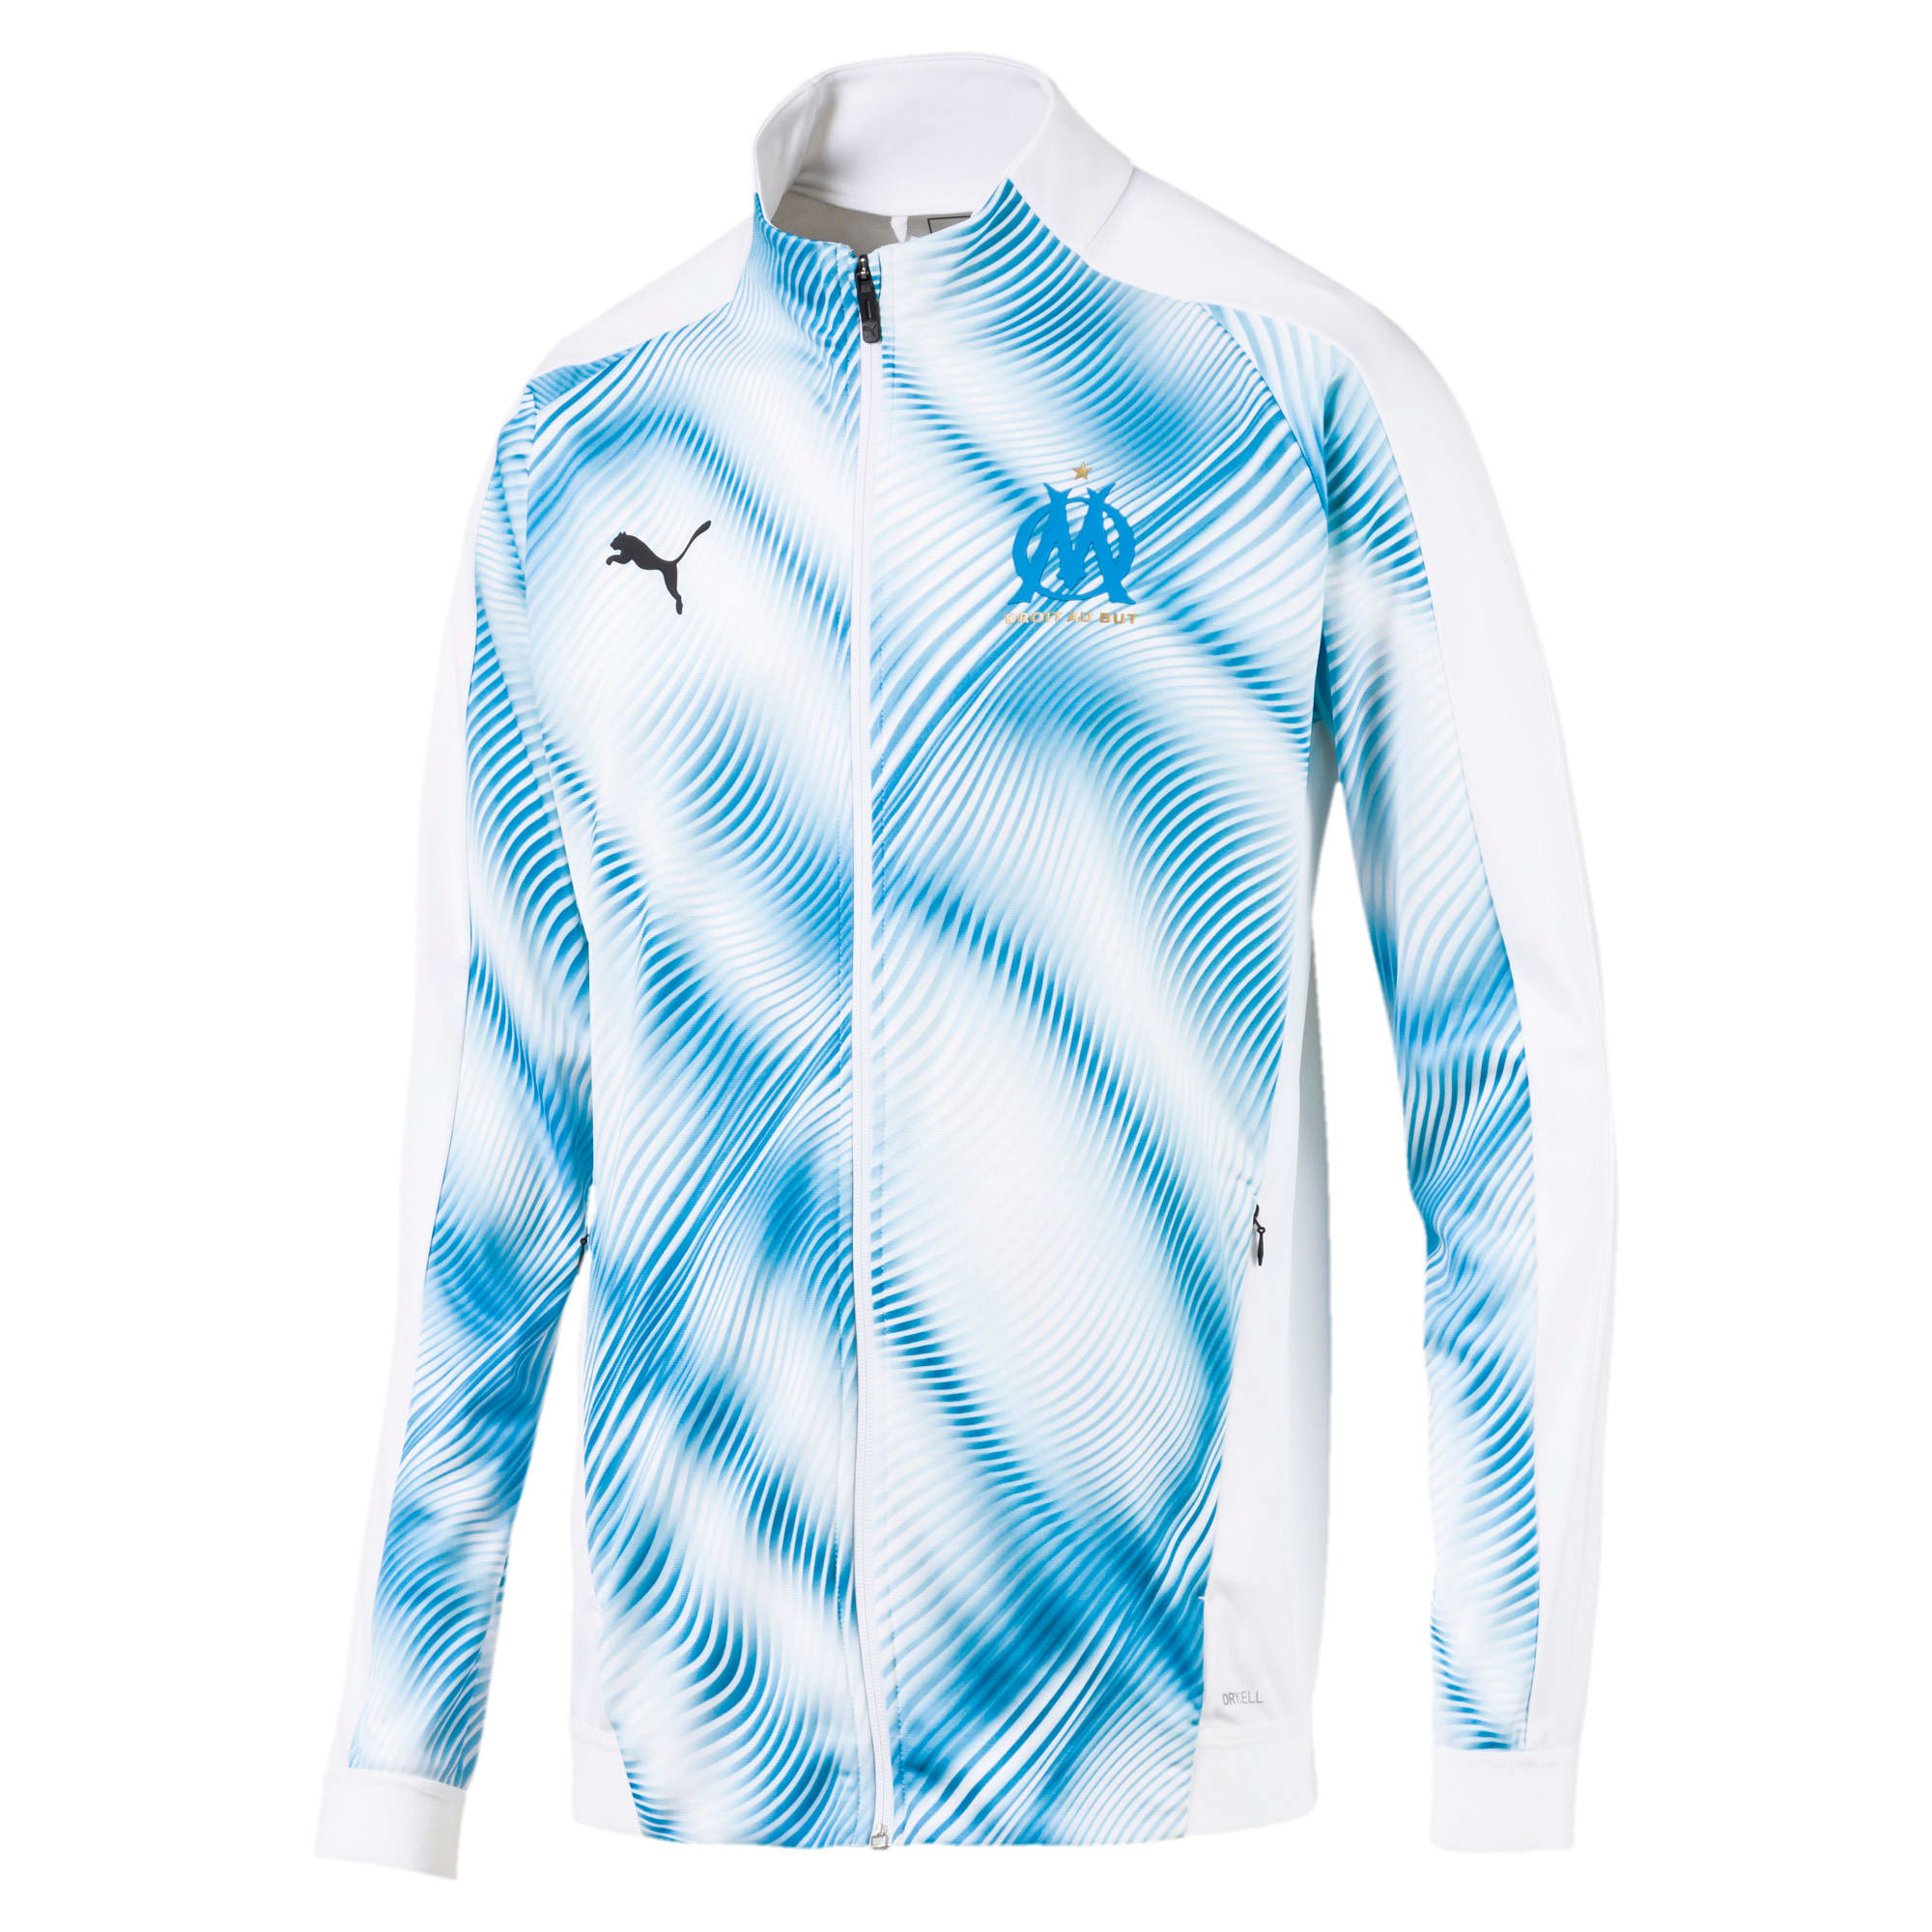 Thumbnail 1 of Olympique de Marseille Stadium Men's Jacket, Puma White-Bleu Azur, medium